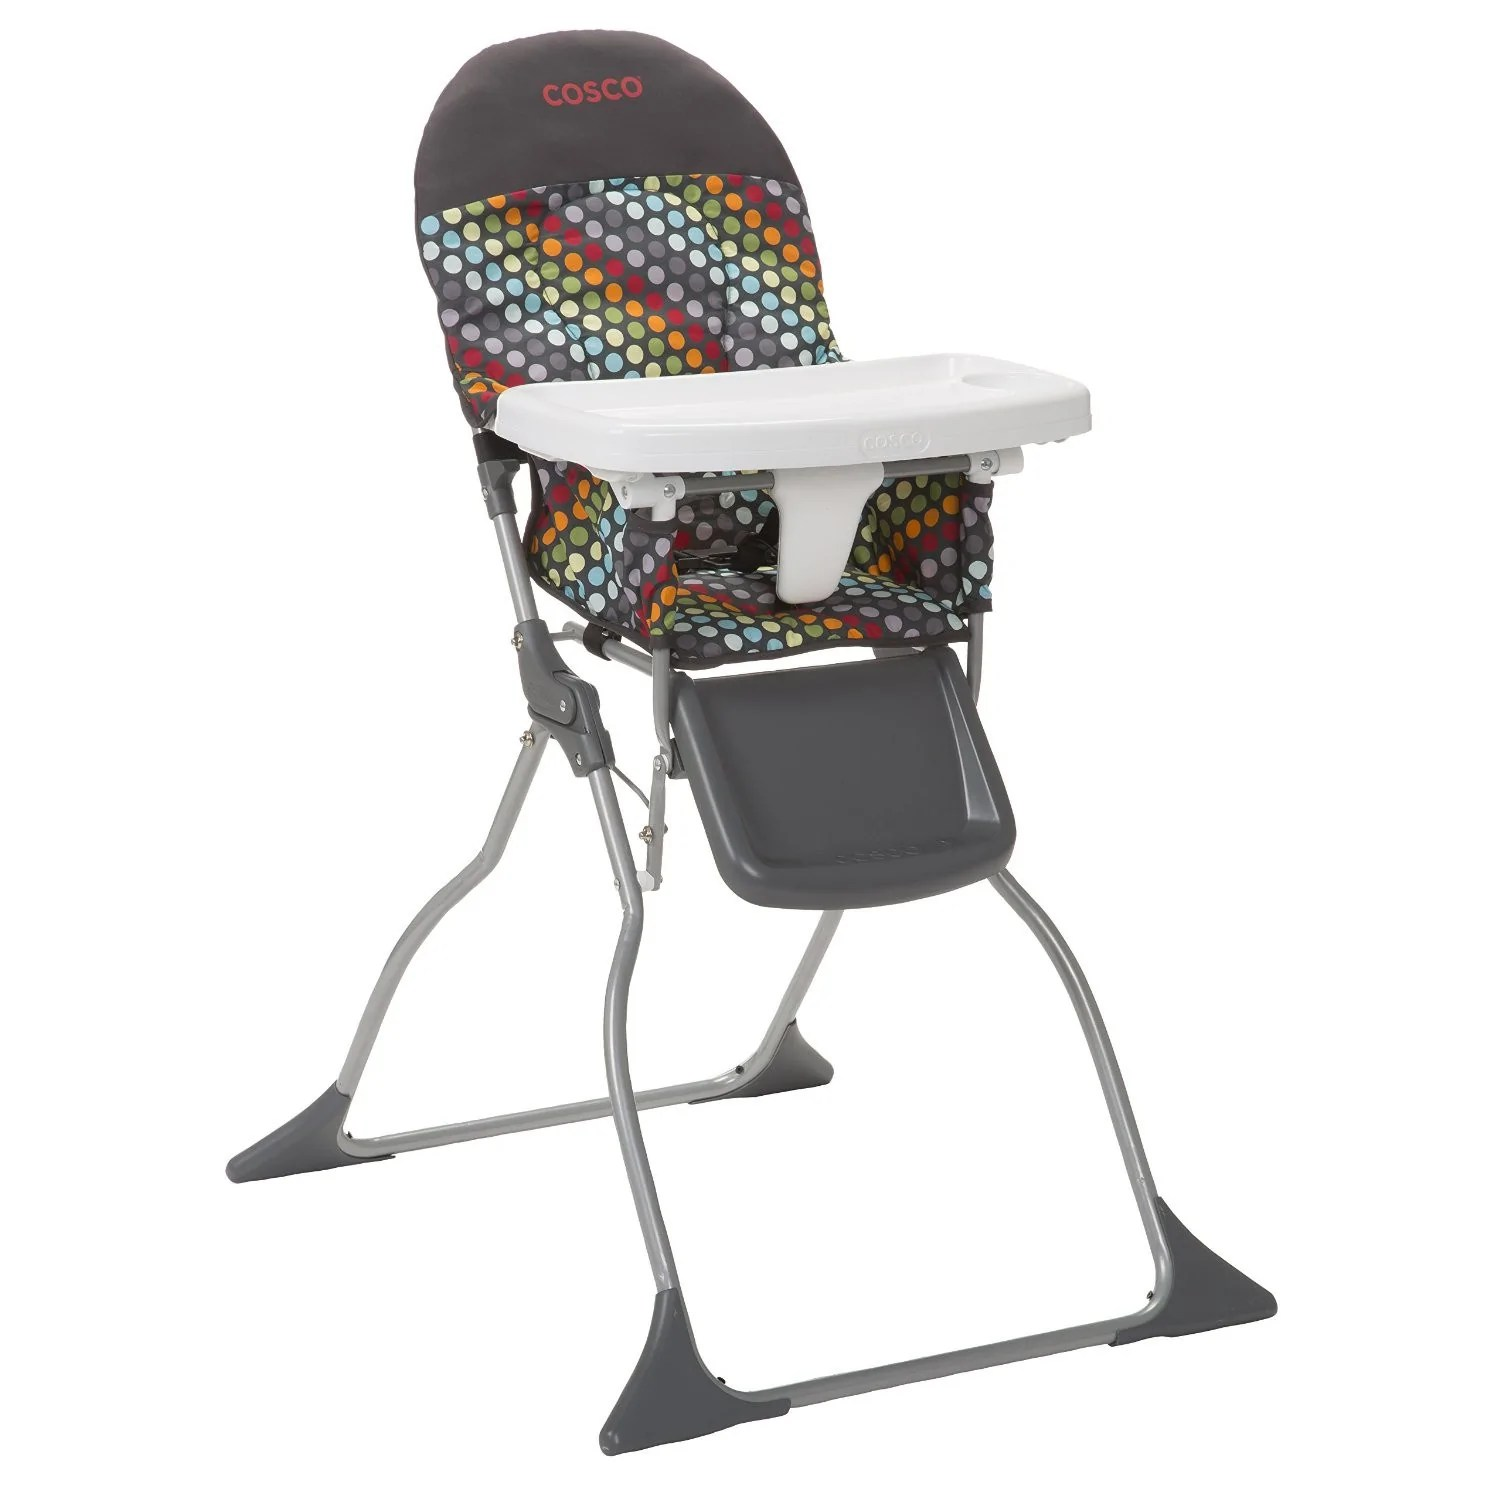 fold down high chair stool for kitchen cosco simple rainbow dots hc225dcd